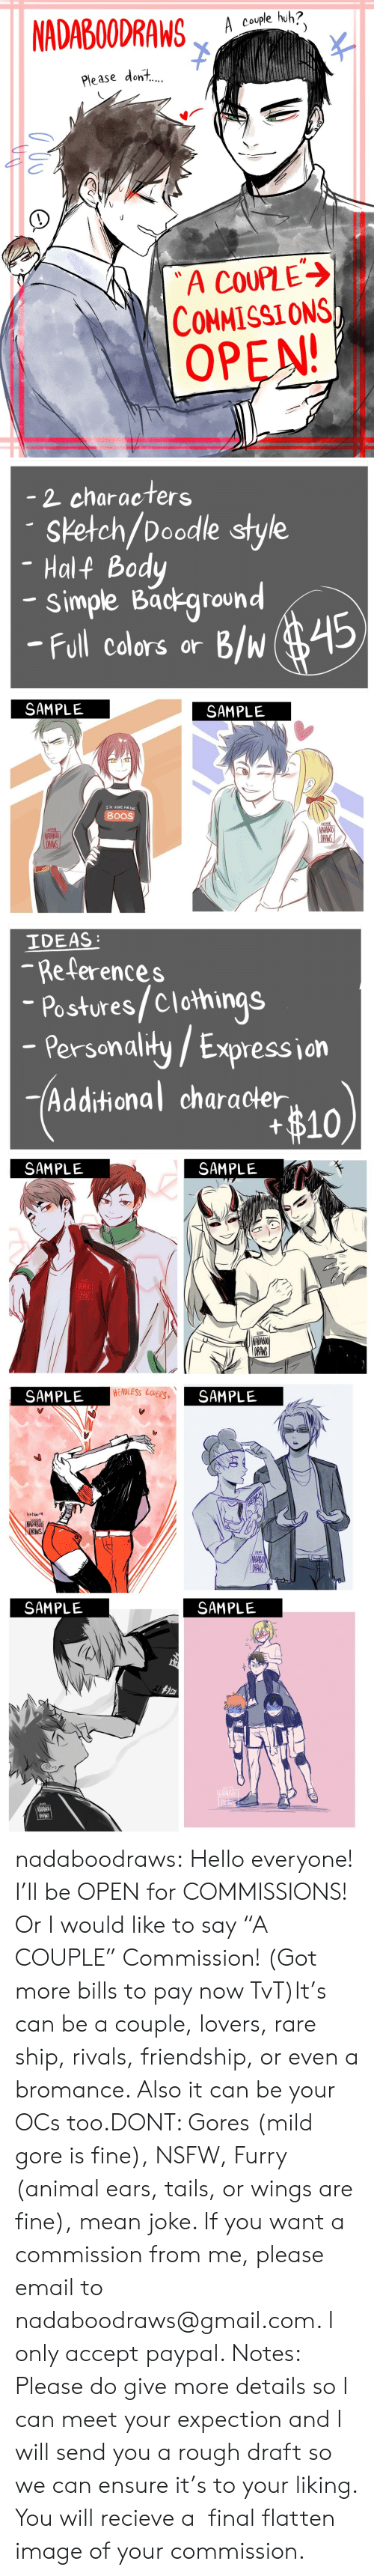 """Hello, Huh, and Nsfw: NADABOODRAW  A couple huh?  Please dont,  A COUPLE  CONMISSIONS  OPEN   2 characters  sketch/Doodle style  Half Body  simple Background  -Full cdlors or B/w 45  SAMPLE  SAMPLE  IM HERE FOR THE  BOOS  22013  22018   IDEAS  -References  Postures/Clothings  - Persenalily/ Expression  Personaliły /  -Additional character  #10  SAMPLE  SAMPLE   HEADLESS LOVERS  SAMPLE  SAMPLE  lnktber叫  3109  NADAB  DRAMS  SAMPLE  SAMPLE  0N5 nadaboodraws:  Hello everyone! I'll be OPEN for COMMISSIONS! Or I would like to say """"A COUPLE"""" Commission! (Got more bills to pay now TvT)It's can be a couple, lovers, rare ship, rivals, friendship, or even a bromance. Also it can be your OCs too.DONT: Gores (mild gore is fine), NSFW, Furry (animal ears, tails, or wings are fine), mean joke. If you want a commission from me, please email to nadaboodraws@gmail.com. I only accept paypal. Notes: Please do give more details so I can meet your expection and I will send you a rough draft so we can ensure it's to your liking. You will recieve a final flatten image of your commission."""